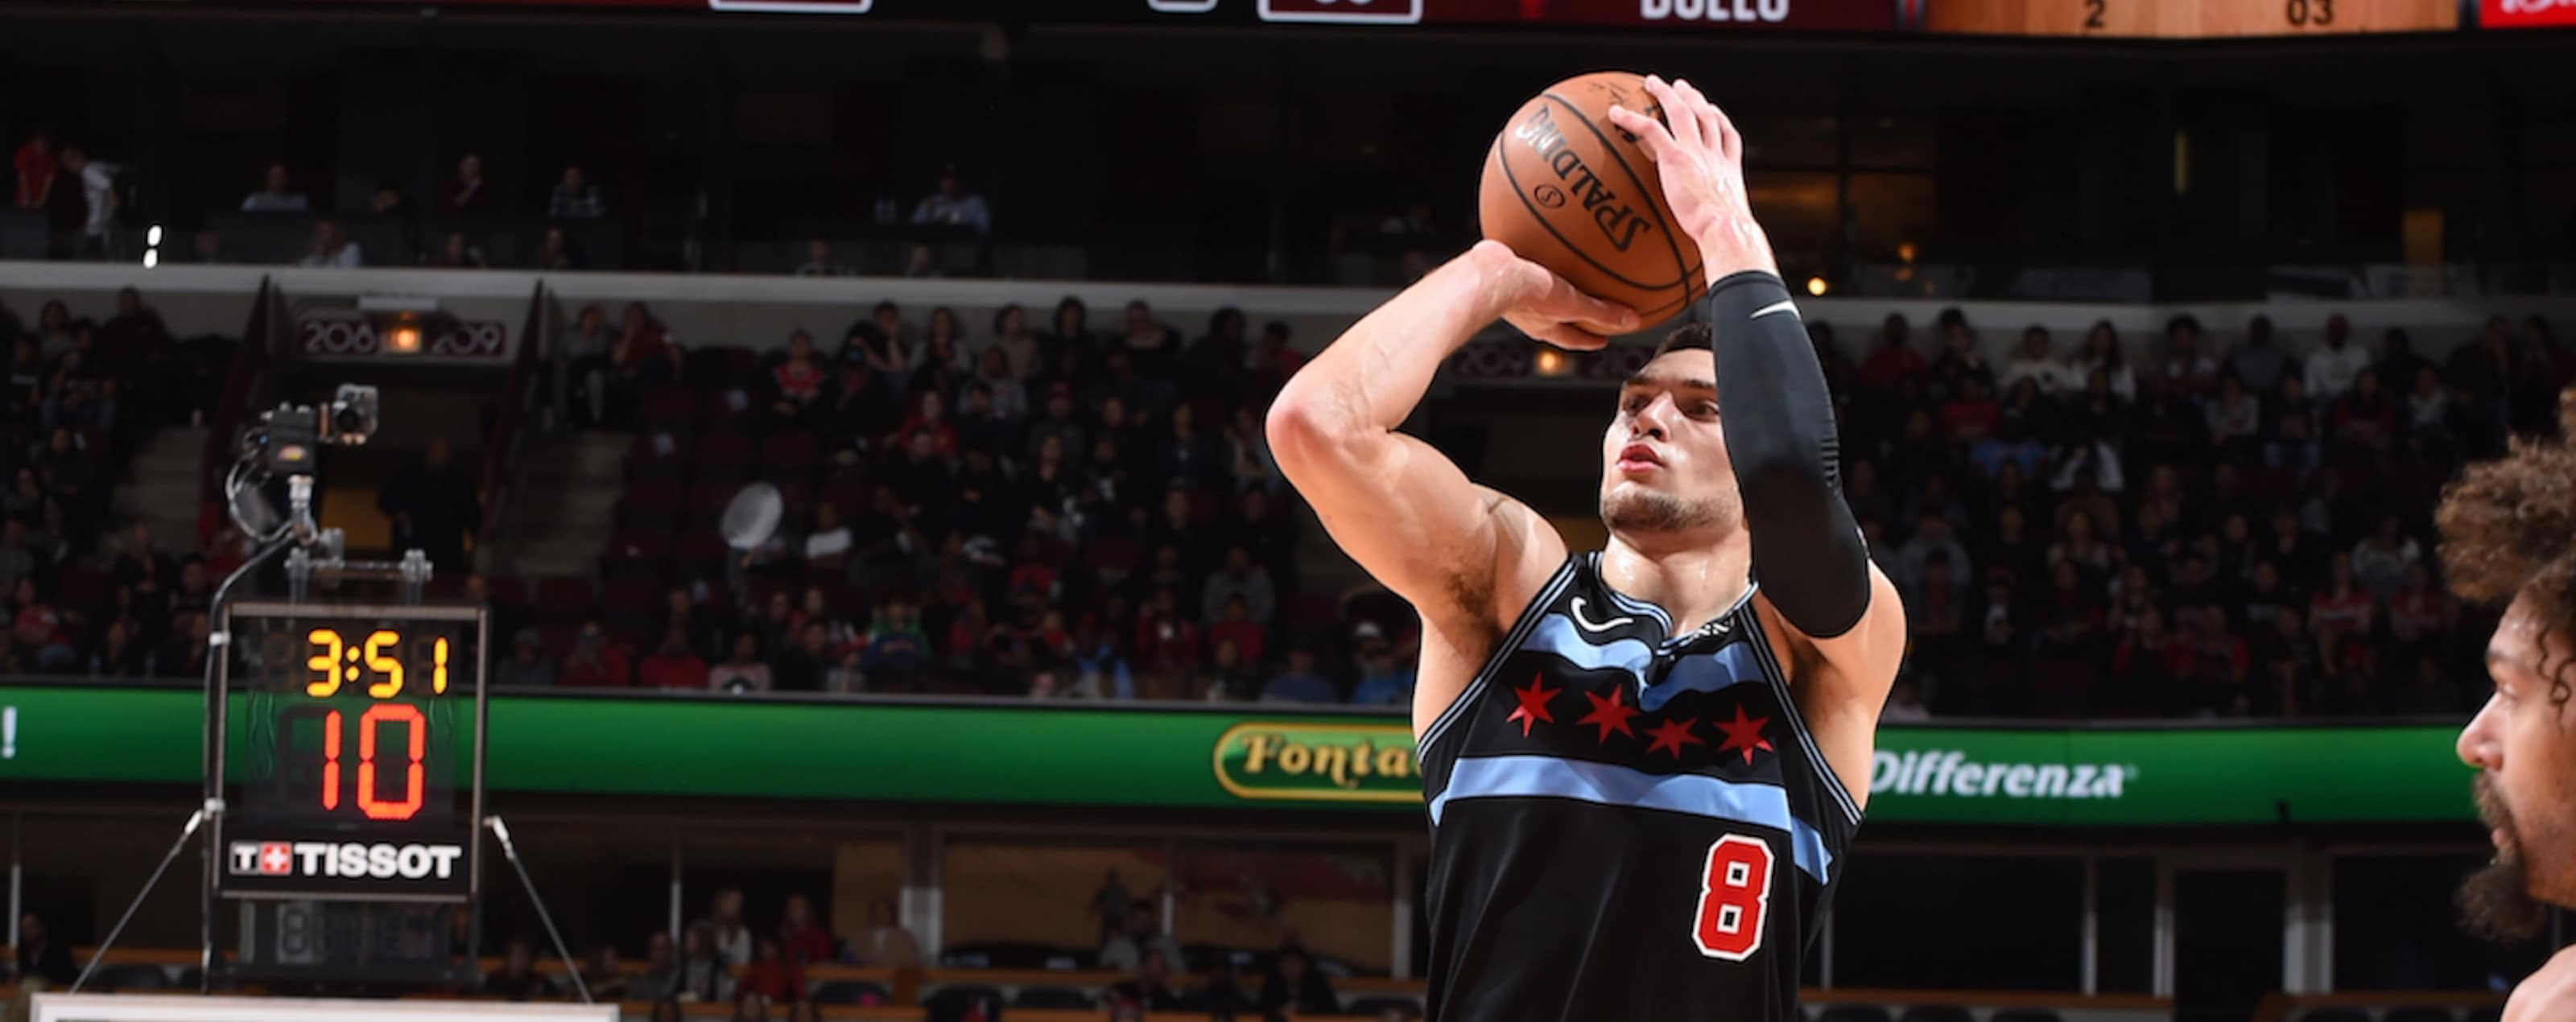 Zach LaVine shoots the ball against the Miami Heat.